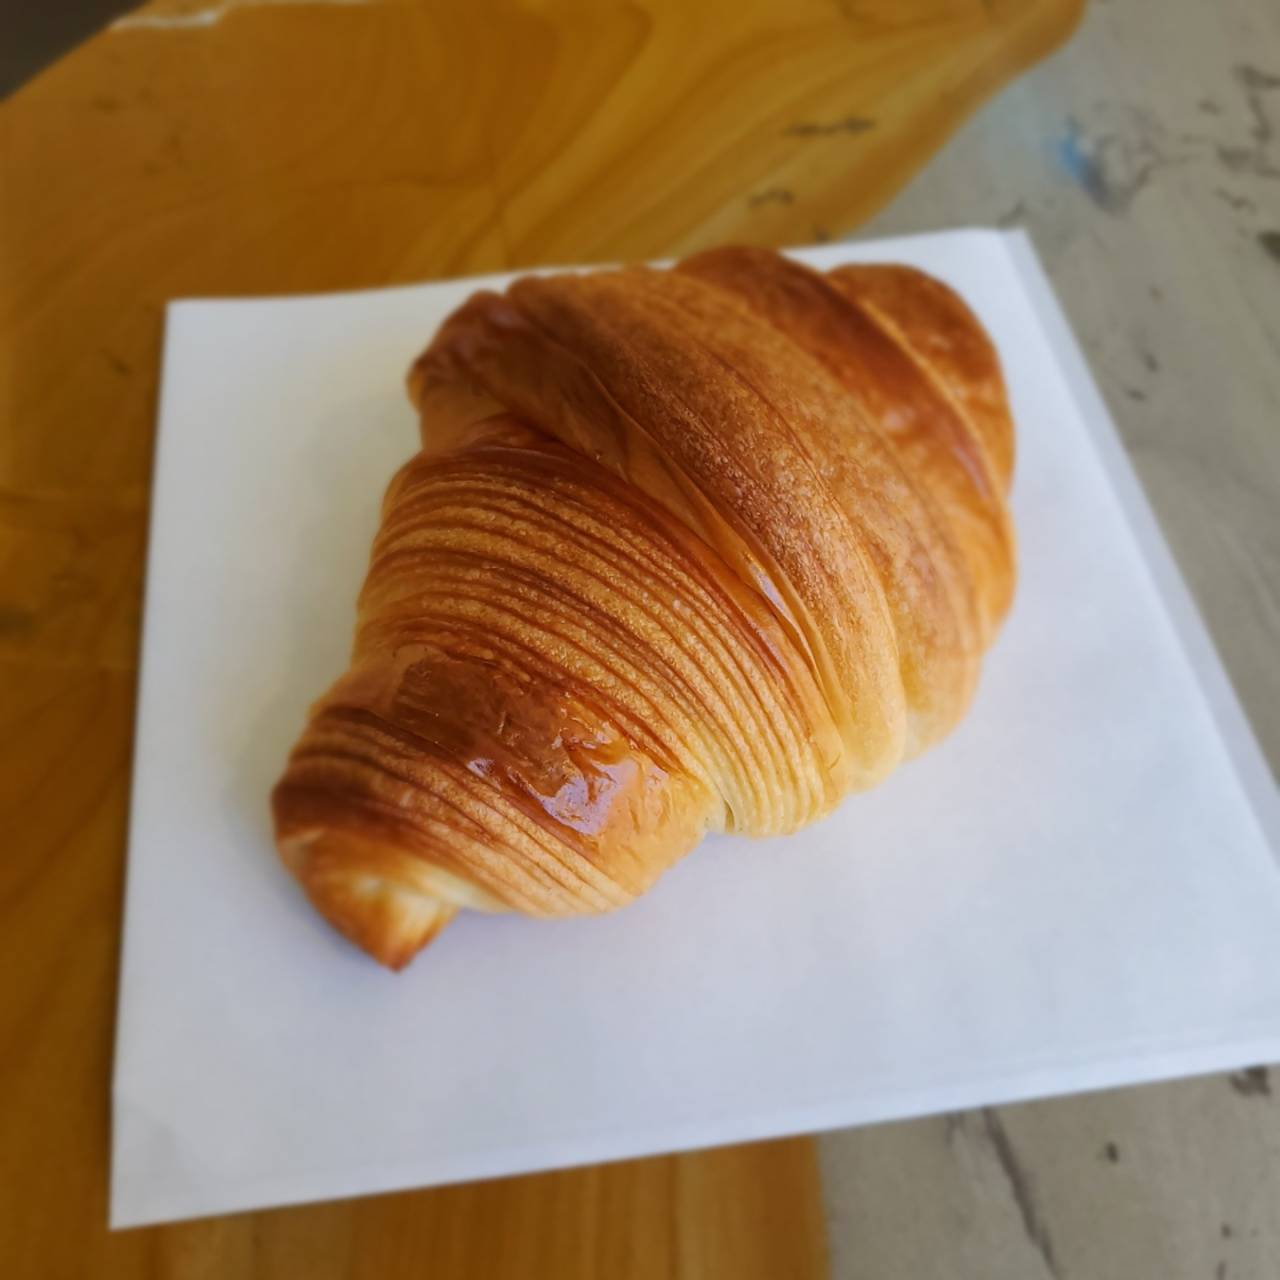 Artisan Croissant Bukchon's croissants are crafted with carefully curated flours designed to complement the butter used to make them. (Artisan Croissant by Artisan Bakers)